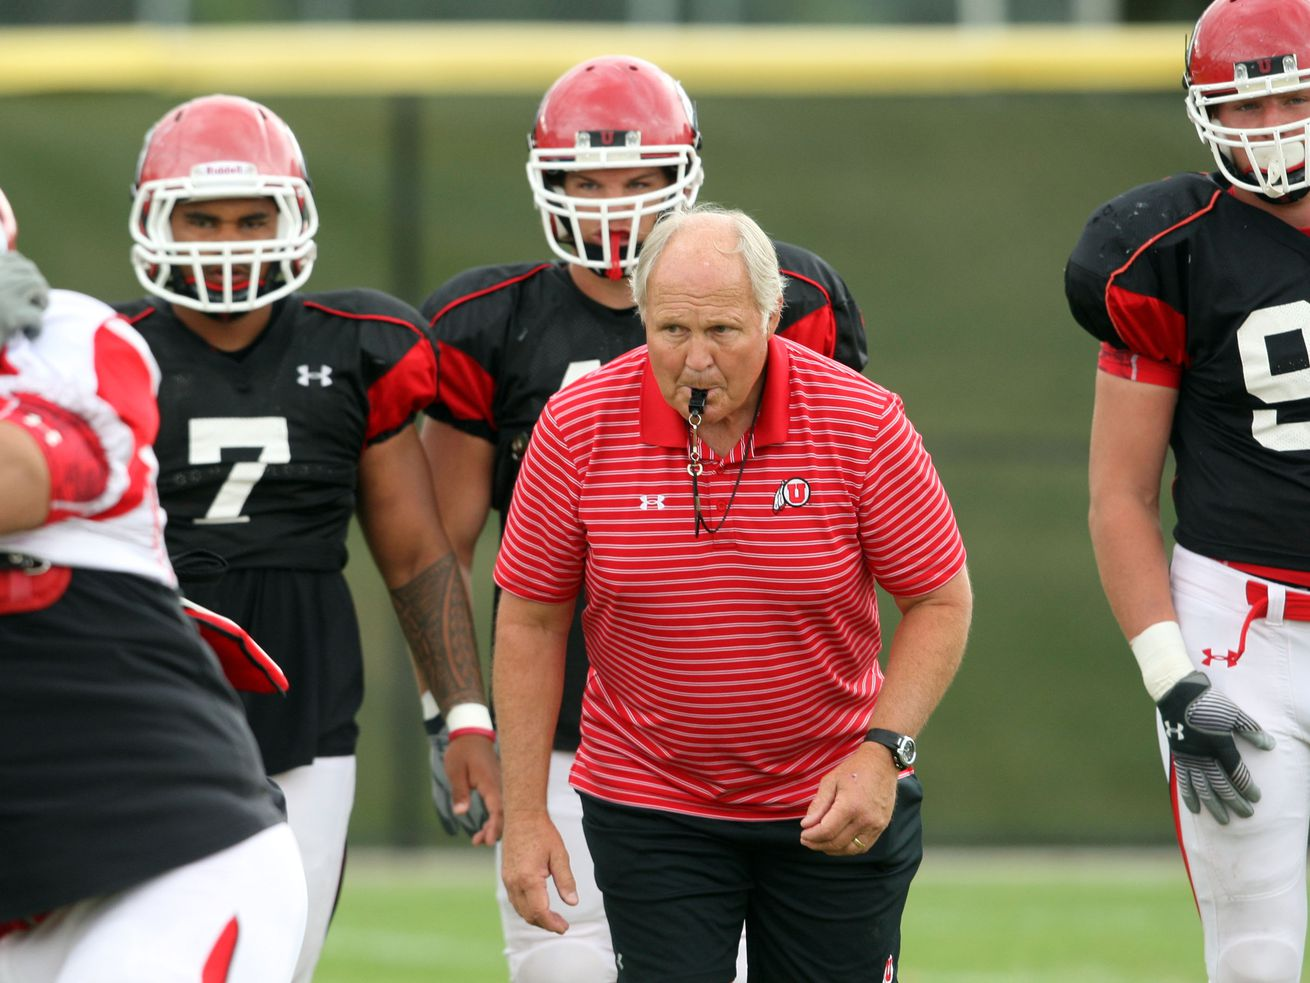 Utah defensive line coach John Pease watches players execute drills during a practice at the University of Utah, Aug. 19, 2010.